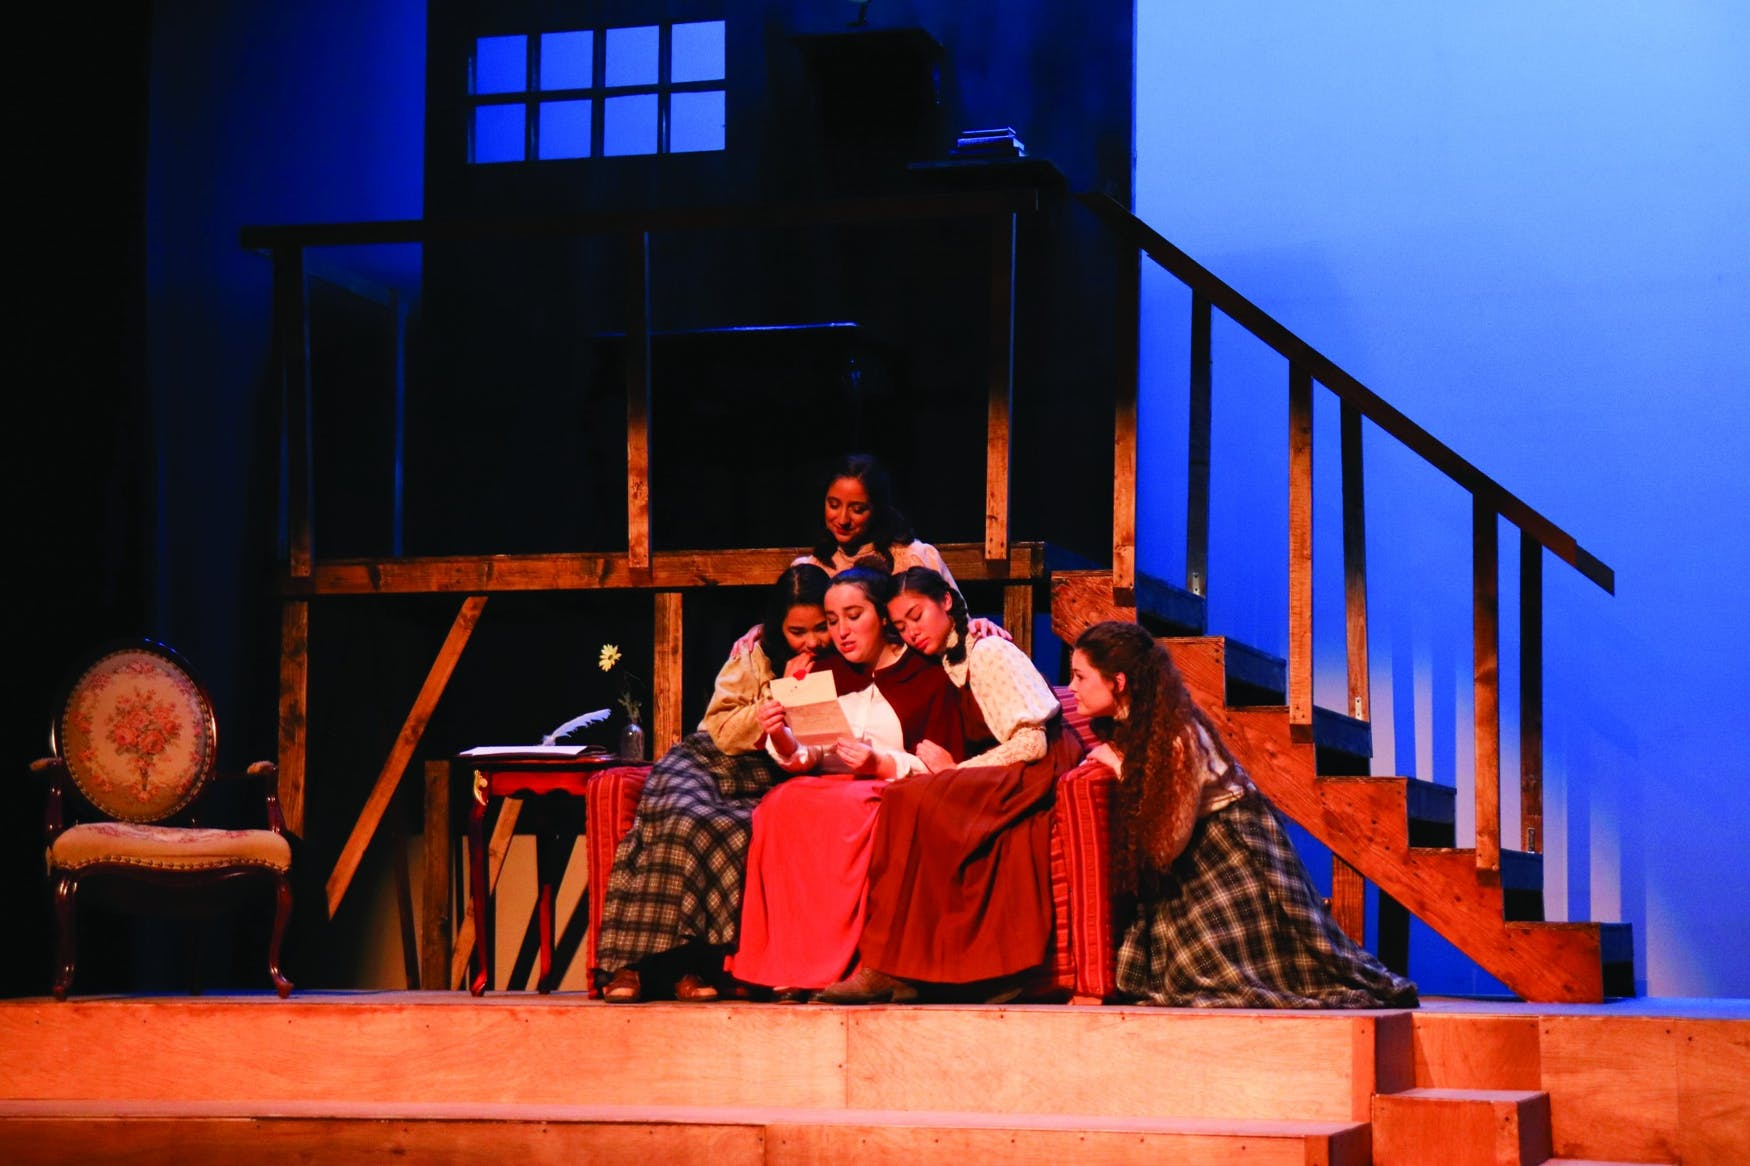 arts-little-women-11-22-19-zk-0757-edit